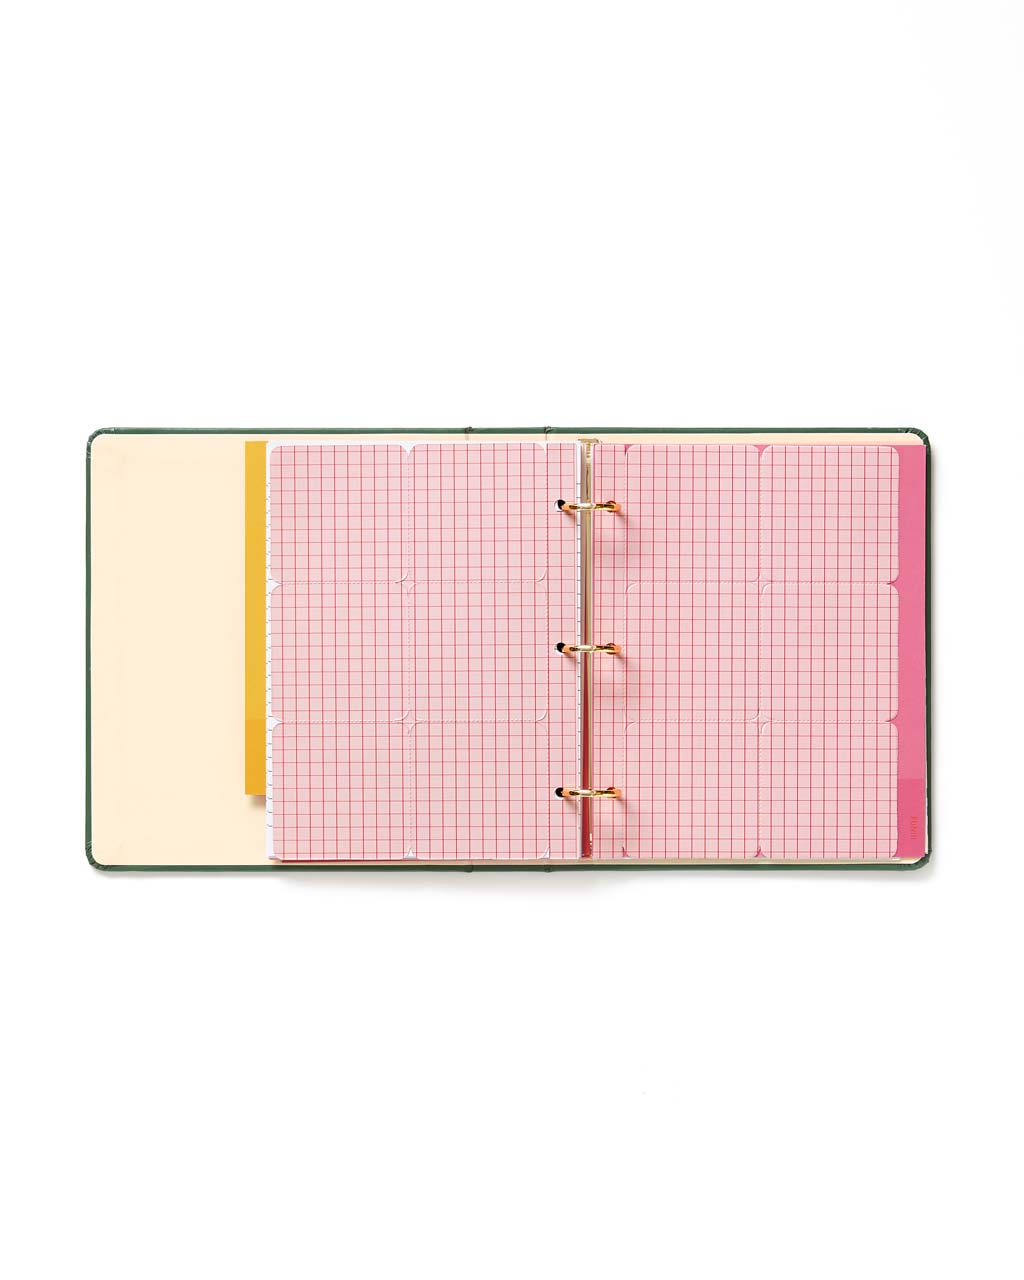 Light pink perforated pages with bright pink gridlines